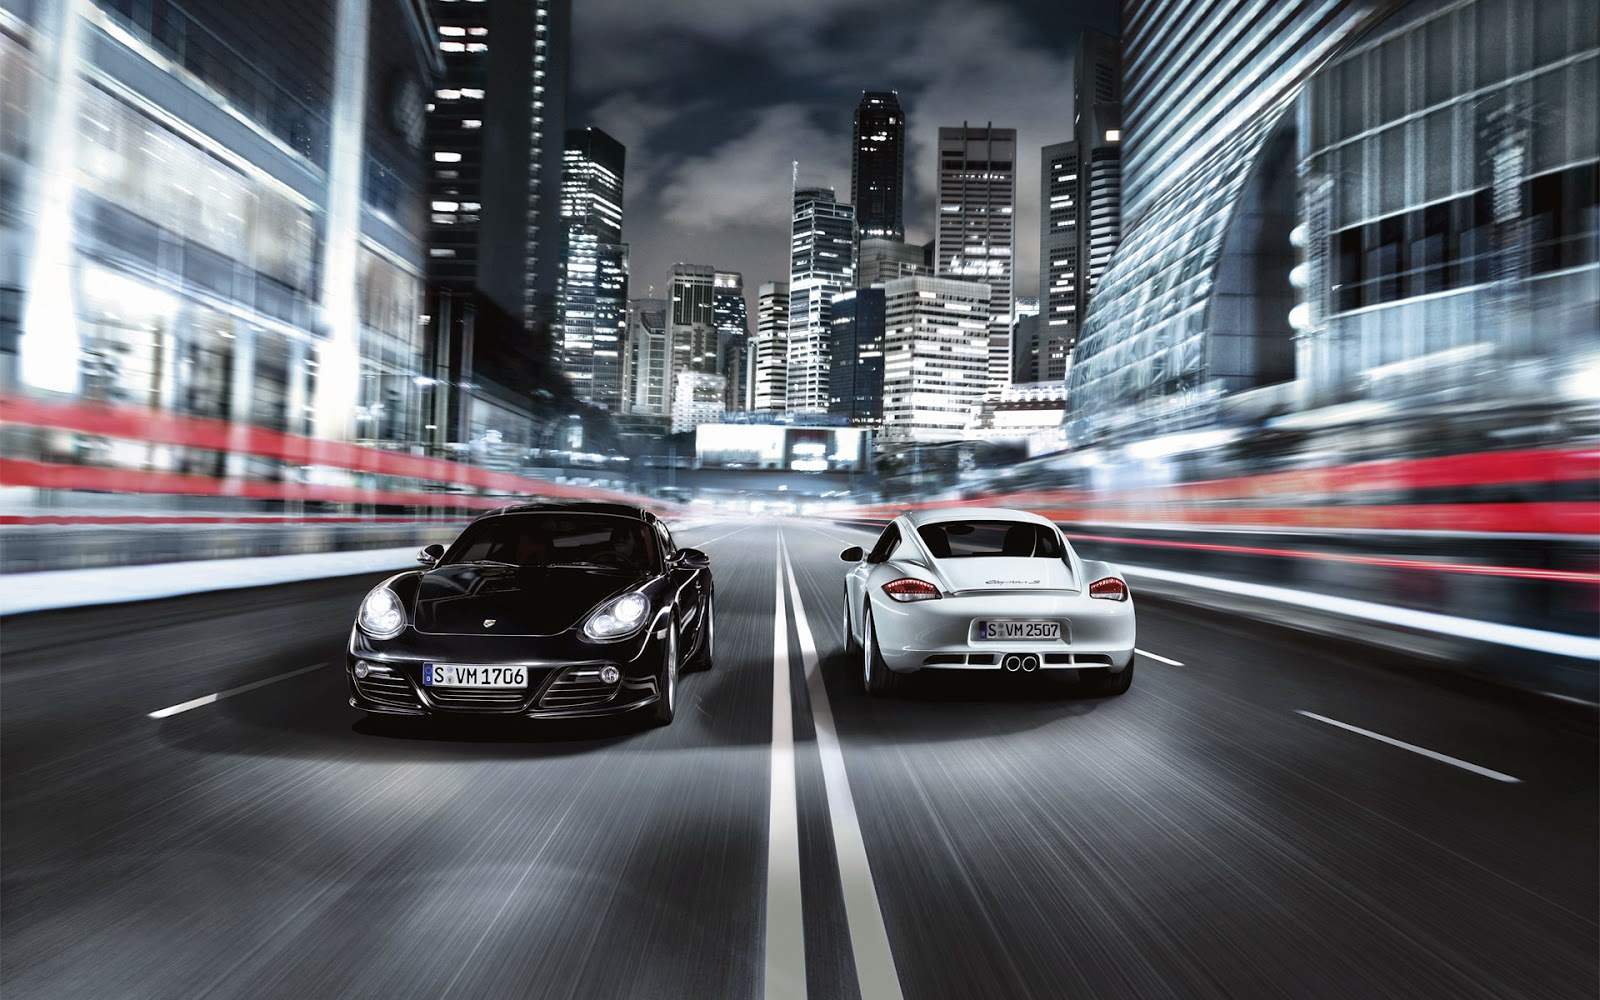 2014 New Porsche Cayman HD Wallpaper